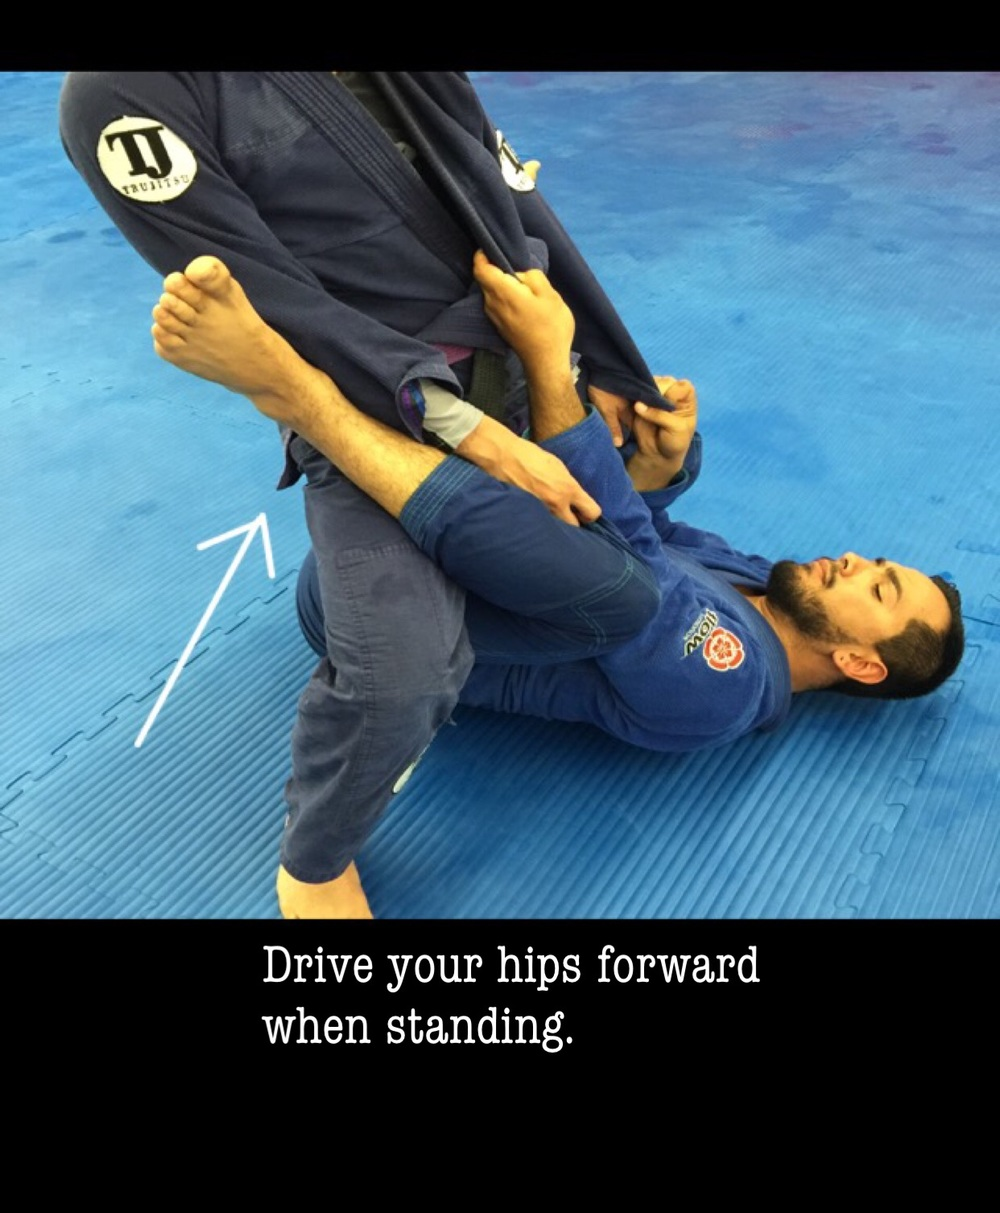 Driving your hips forward causes pressure and still allows you to keep balance. This also creates a frame with your legs that is good for defending the ankle/leg hook.